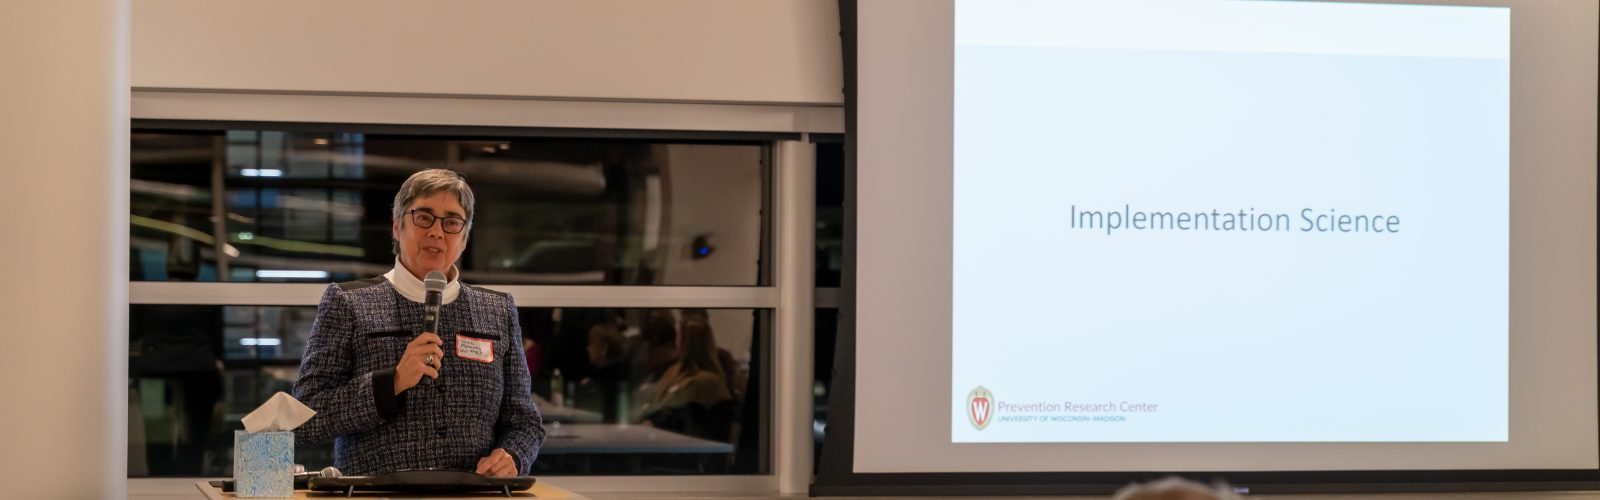 A photo of a woman standing and speaking at a podium in front of a presentation screen.